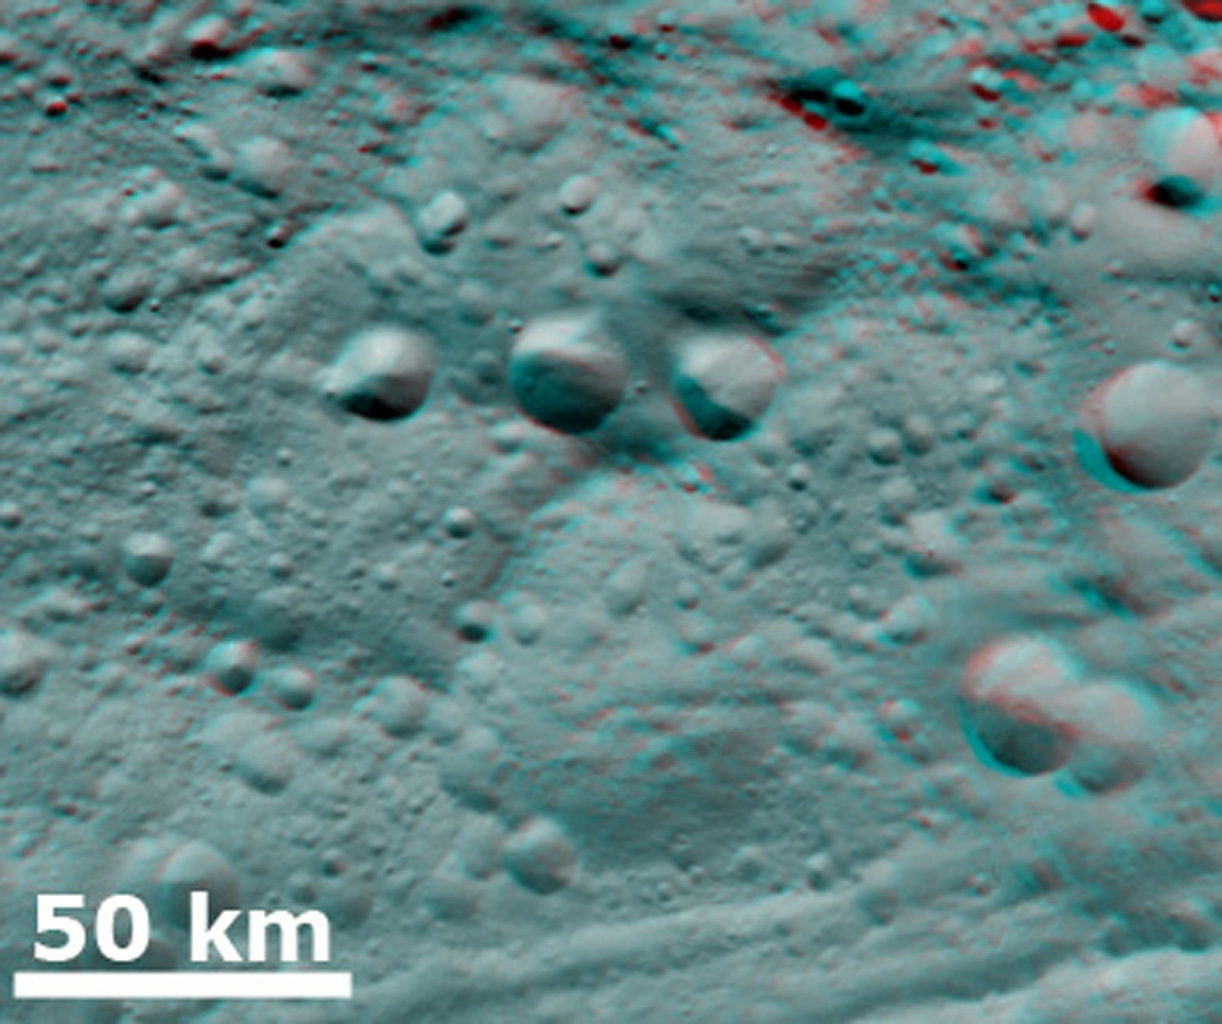 3-D Image of Degraded Craters